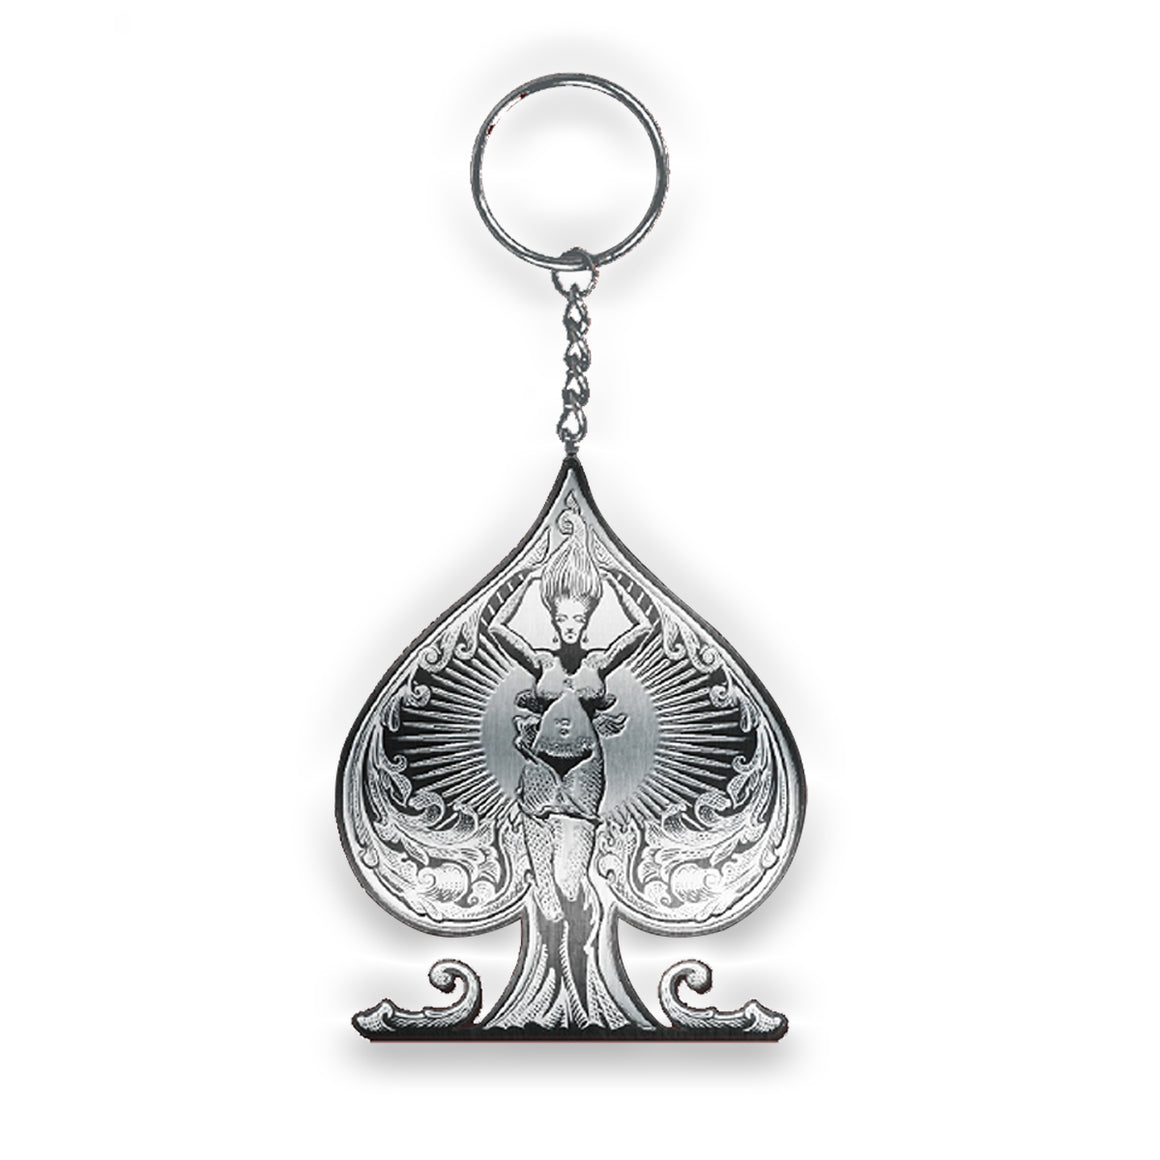 Ace of Spades Key Ring